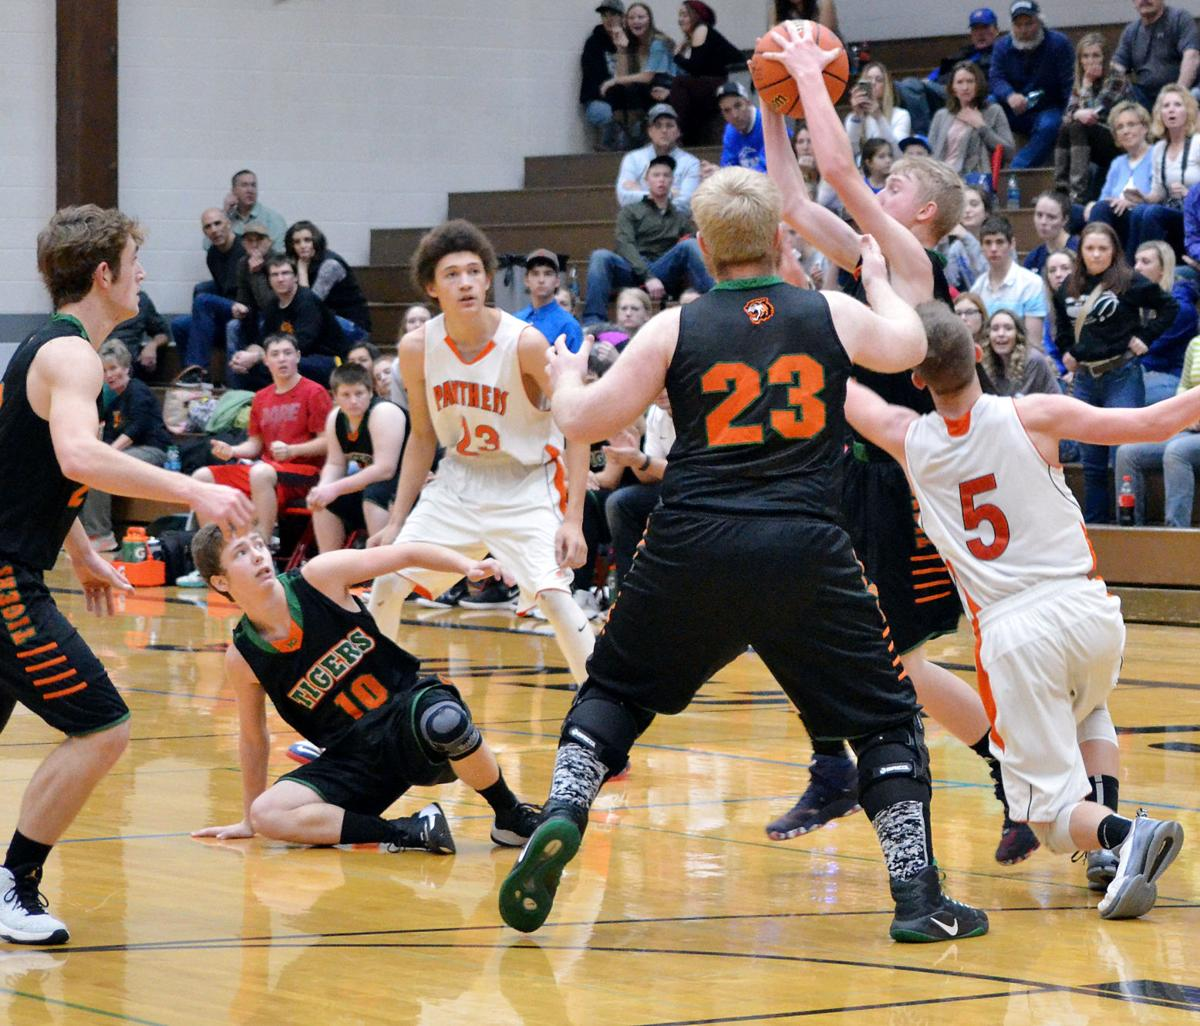 Tiger boys fall to Panthers